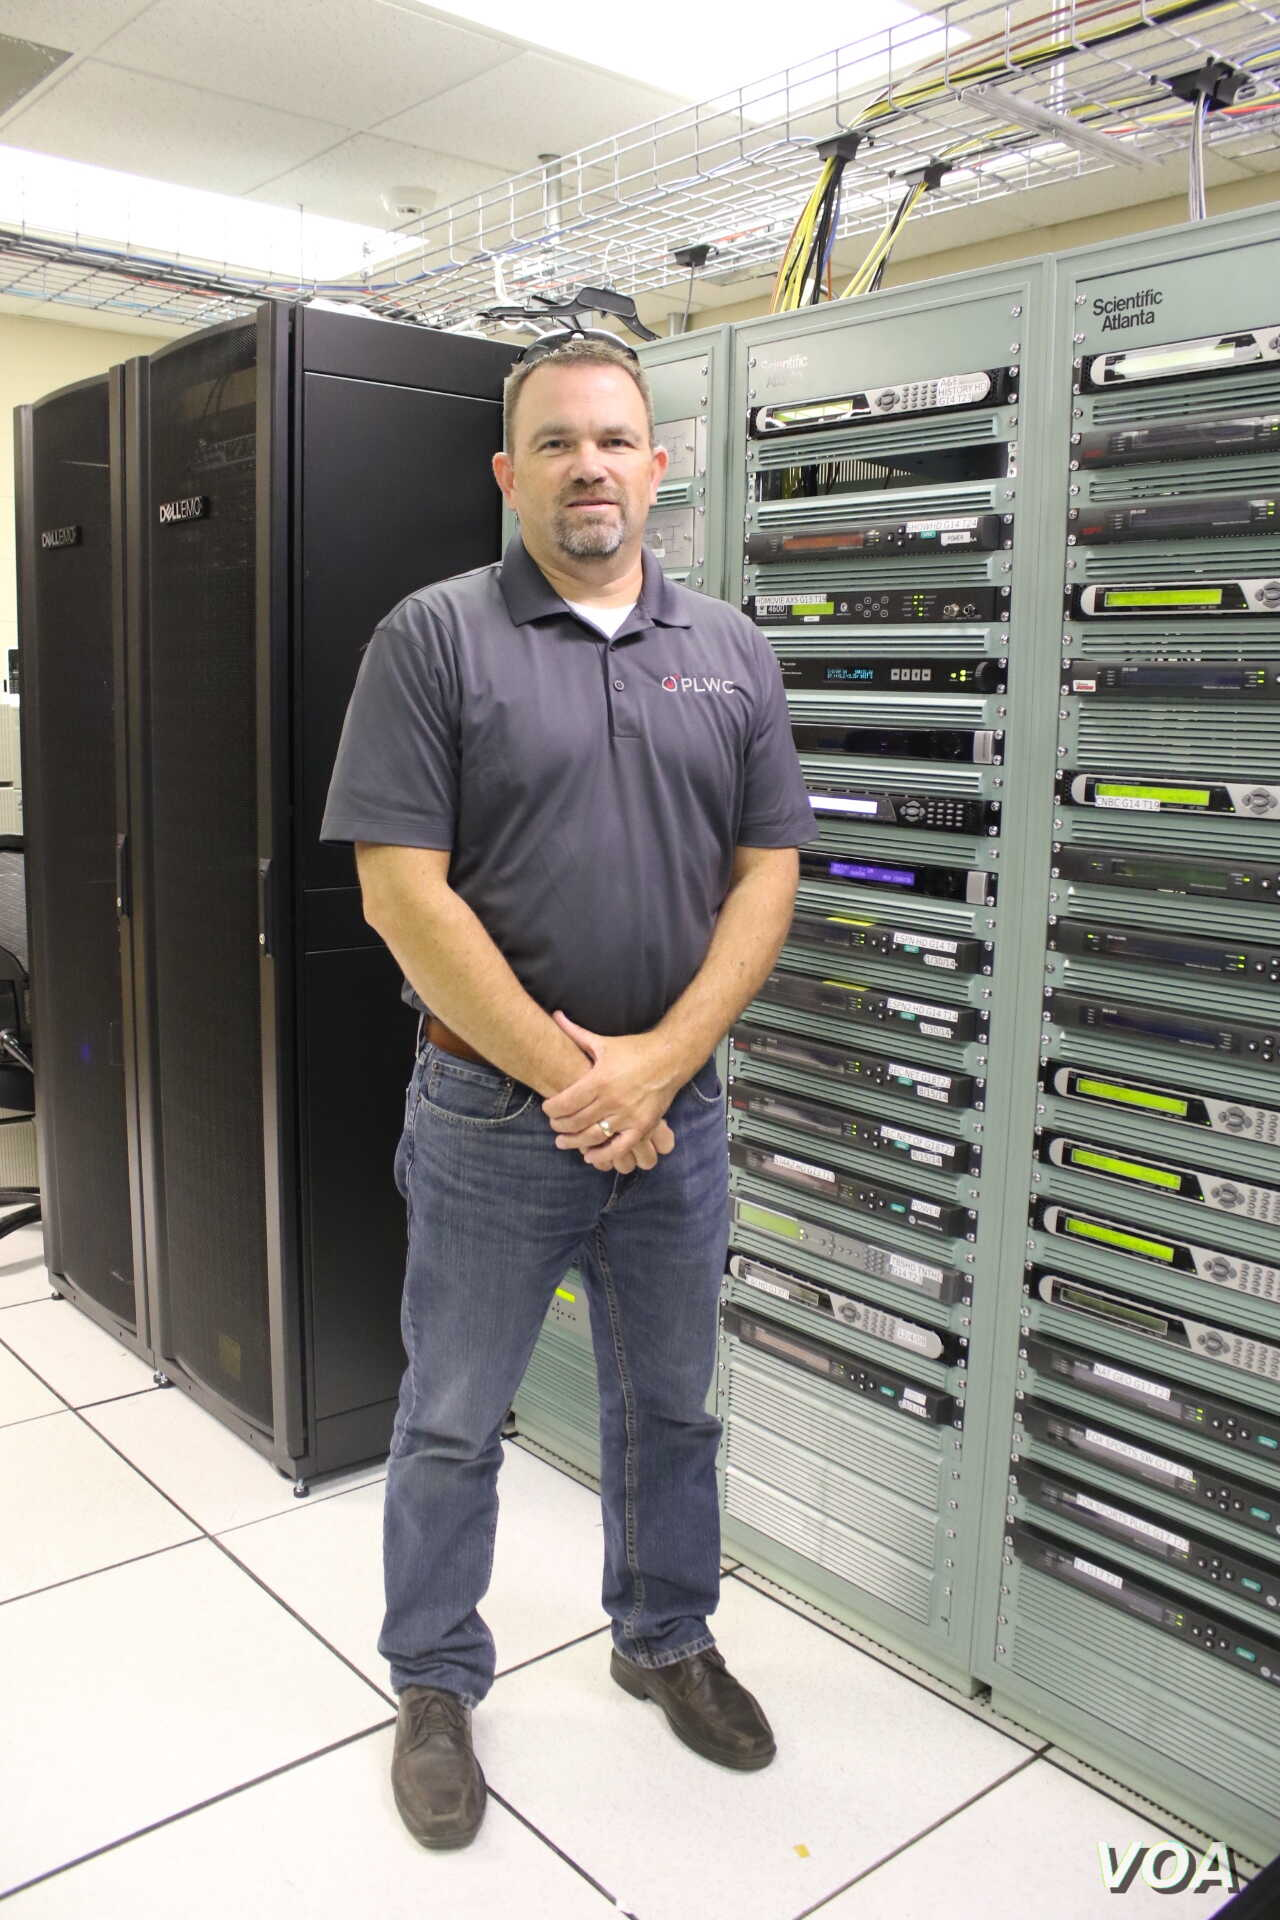 """Marcus Dowdy, Director of Broadband Services for the city of Paragould, said residents """"weren't happy"""" with services previously provided by a private telecommunications company. In the early 1990s, the city sought to change that. (T.Krug/VOA)"""